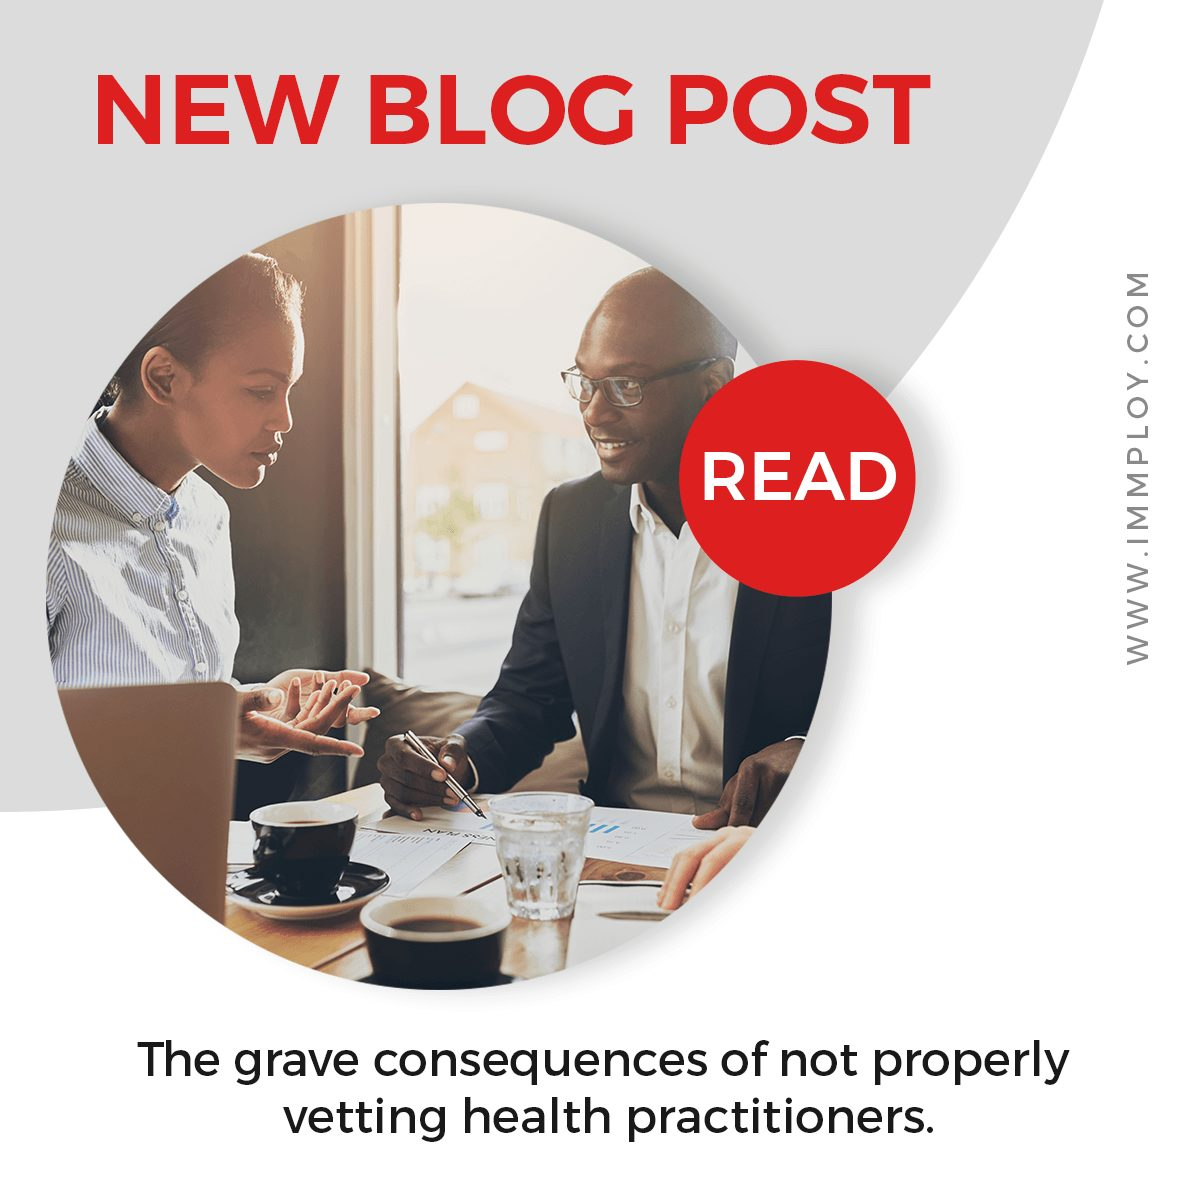 The Grave Consequences of Improperly Vetted Health Practitioners